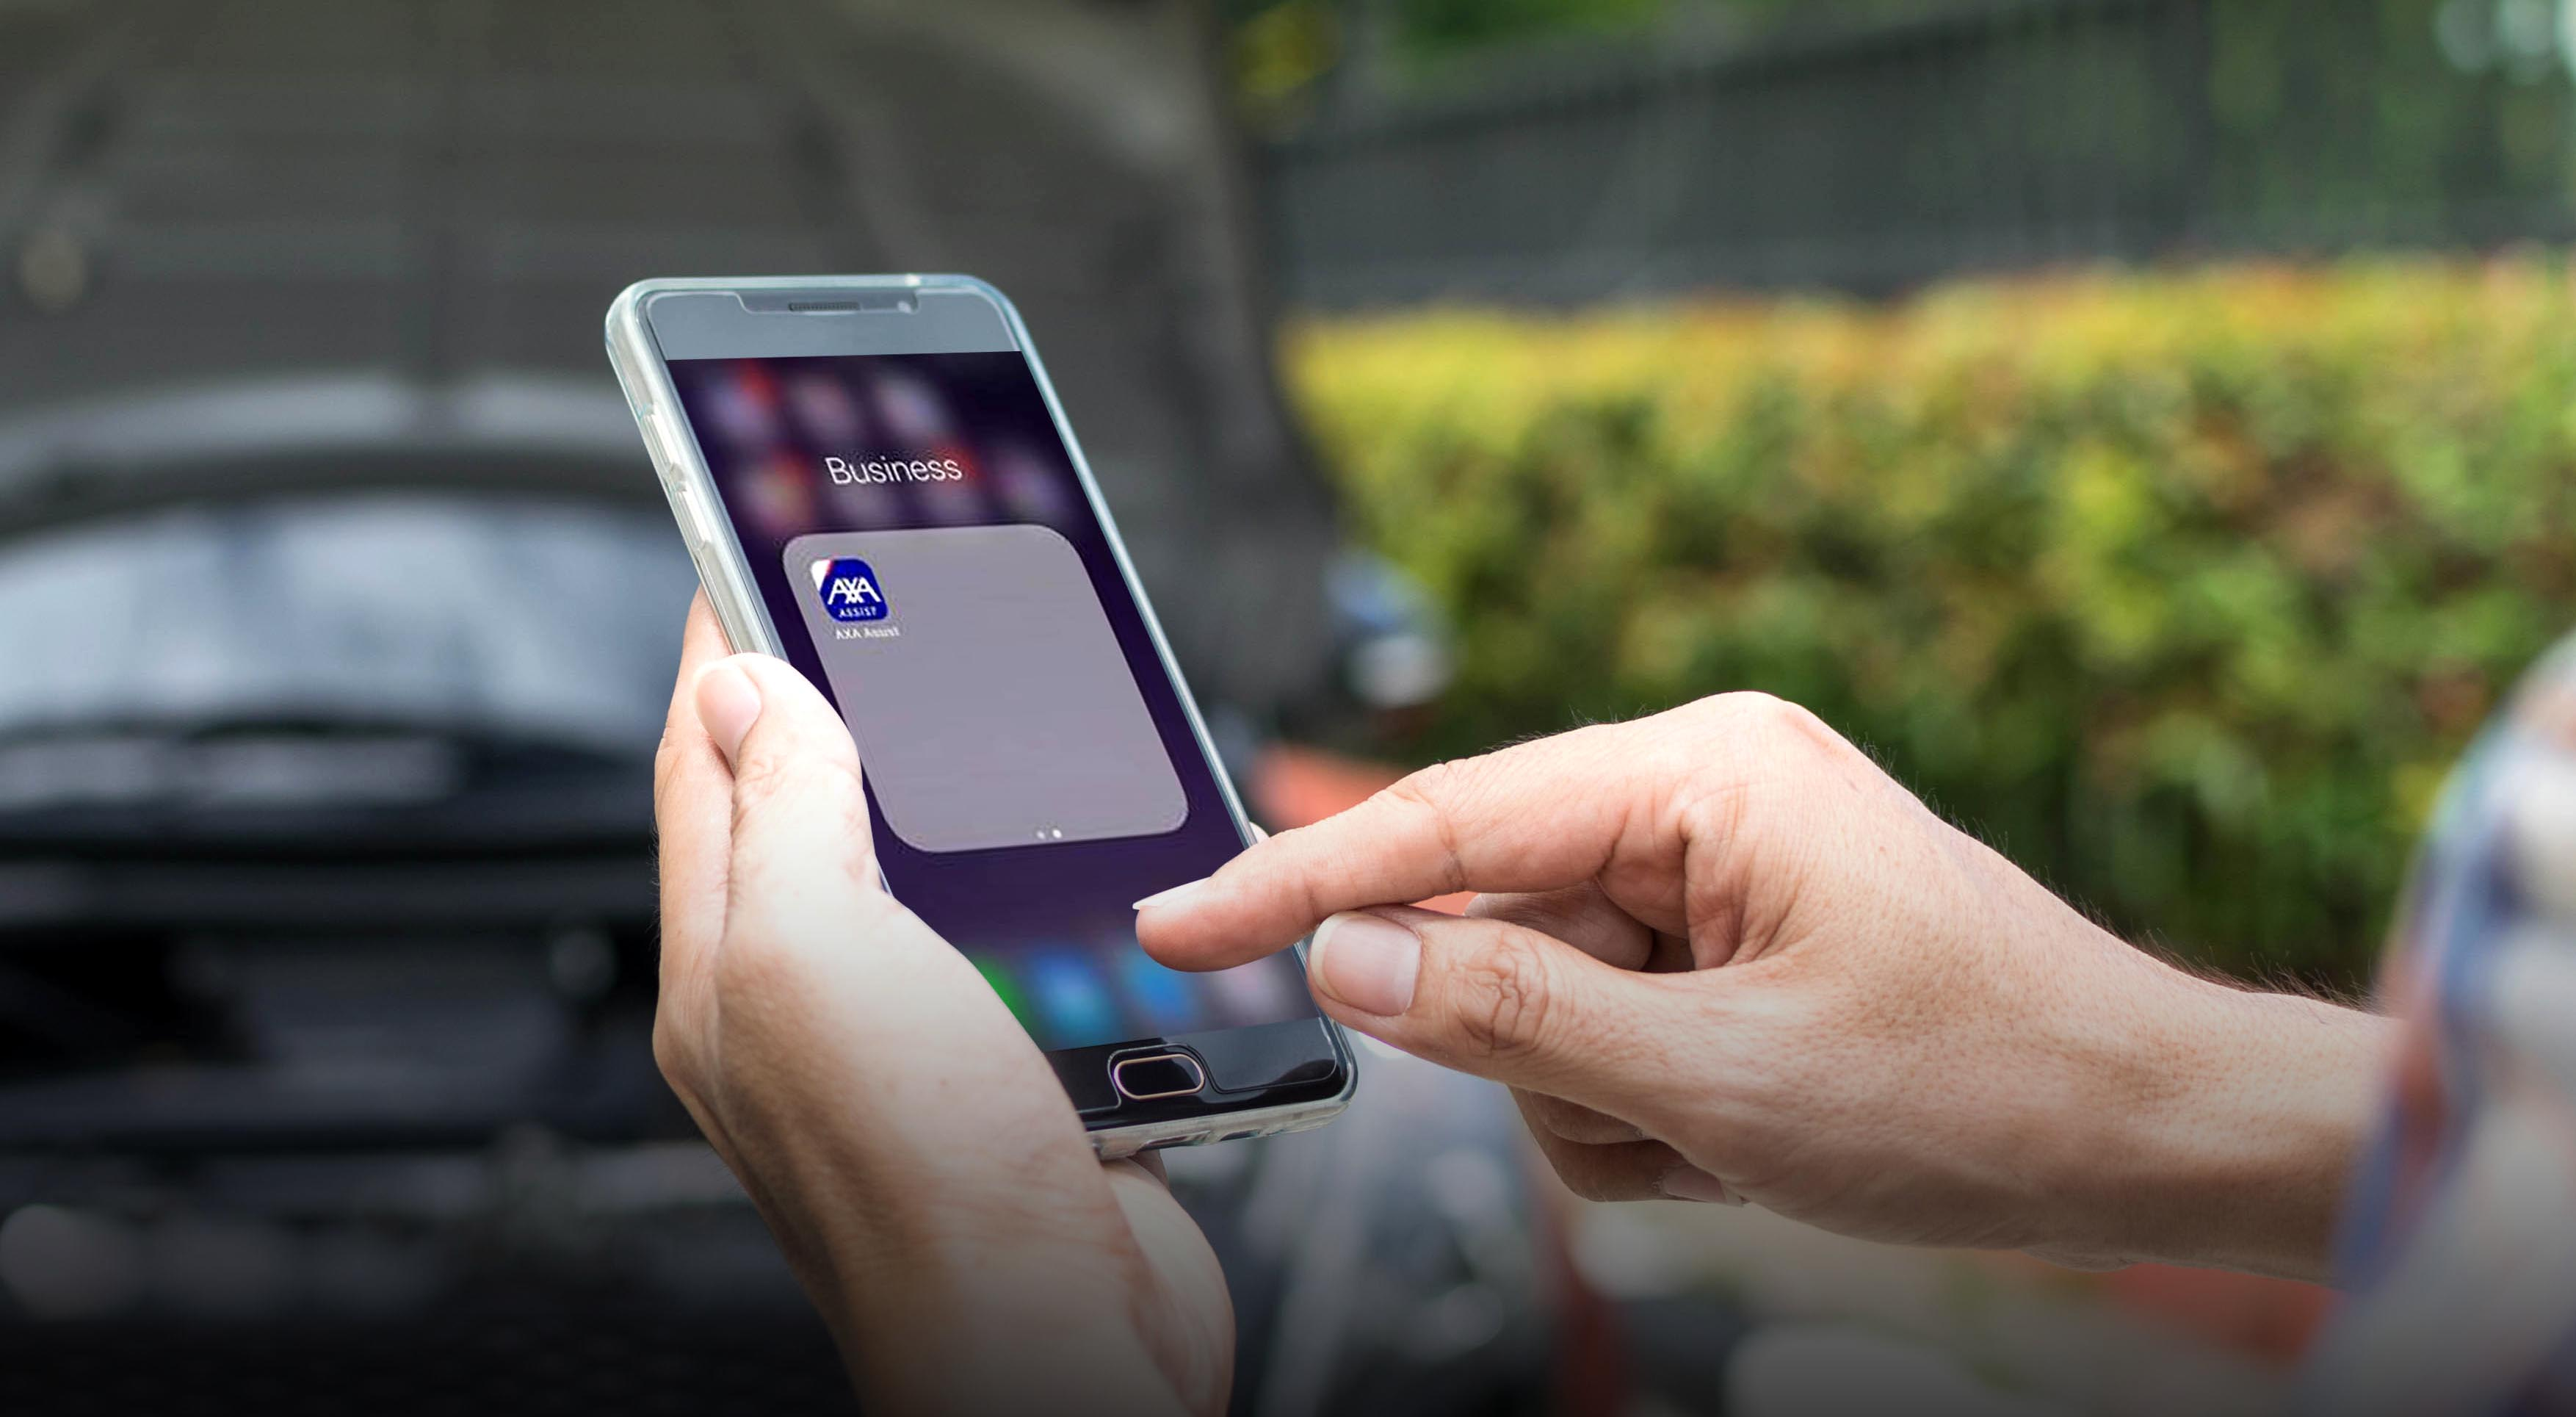 AXA now offers one-touch red button emergency assistance  to motor policyholders